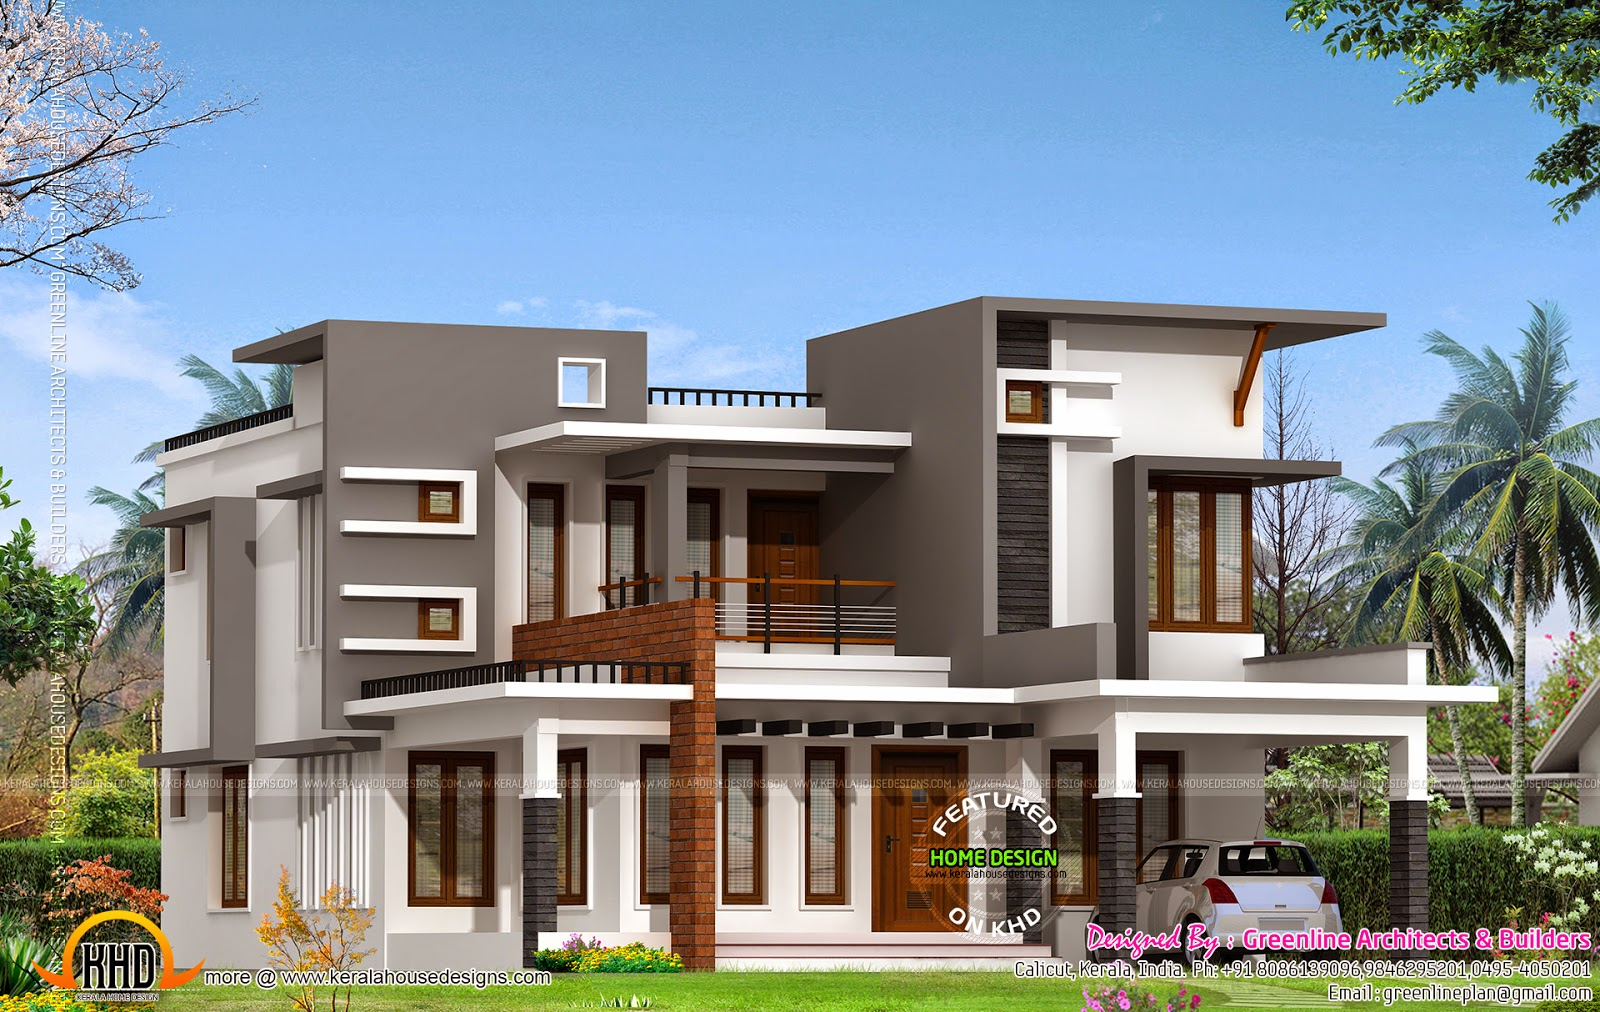 Contemporary house with estimate cost 28 lakhs kerala for Low cost house plans with estimate